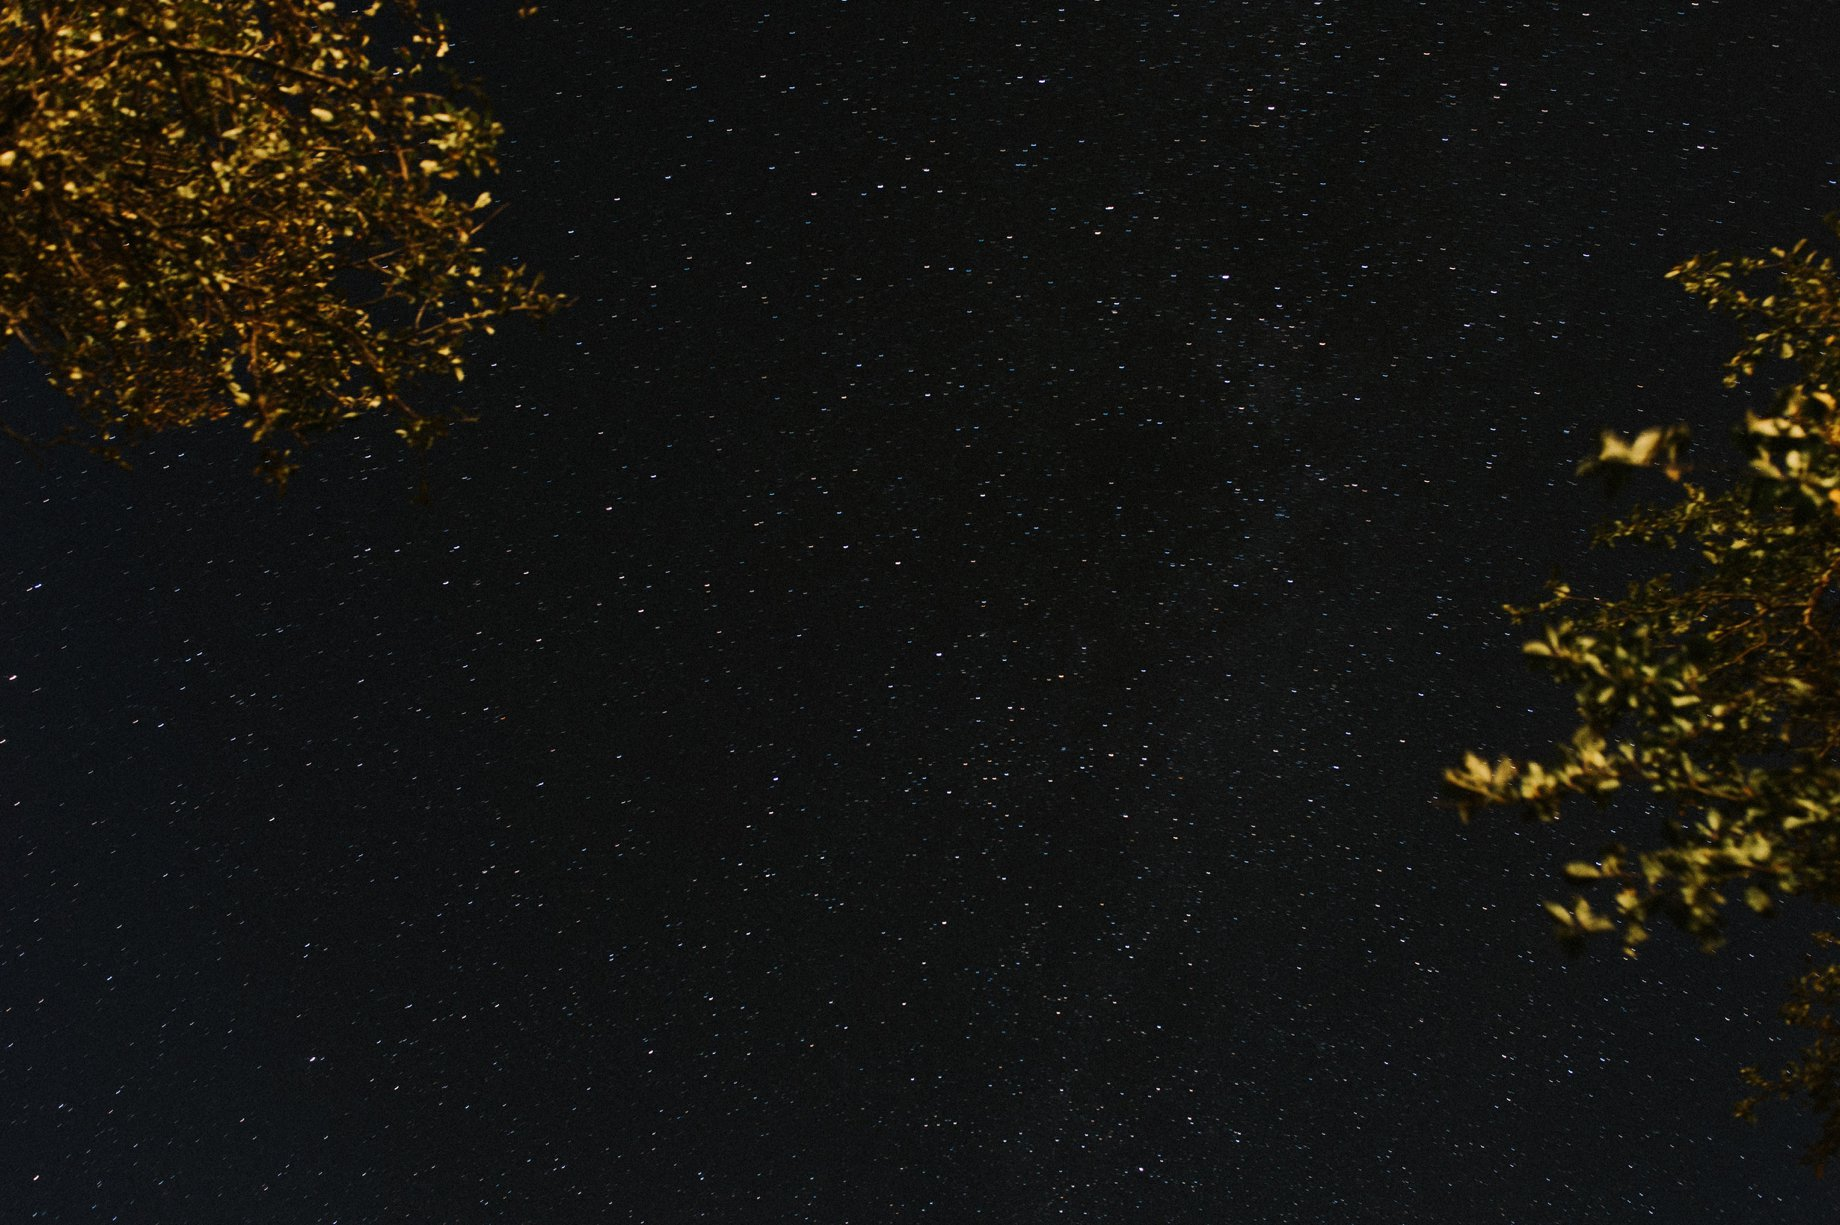 starry sky in the catskills